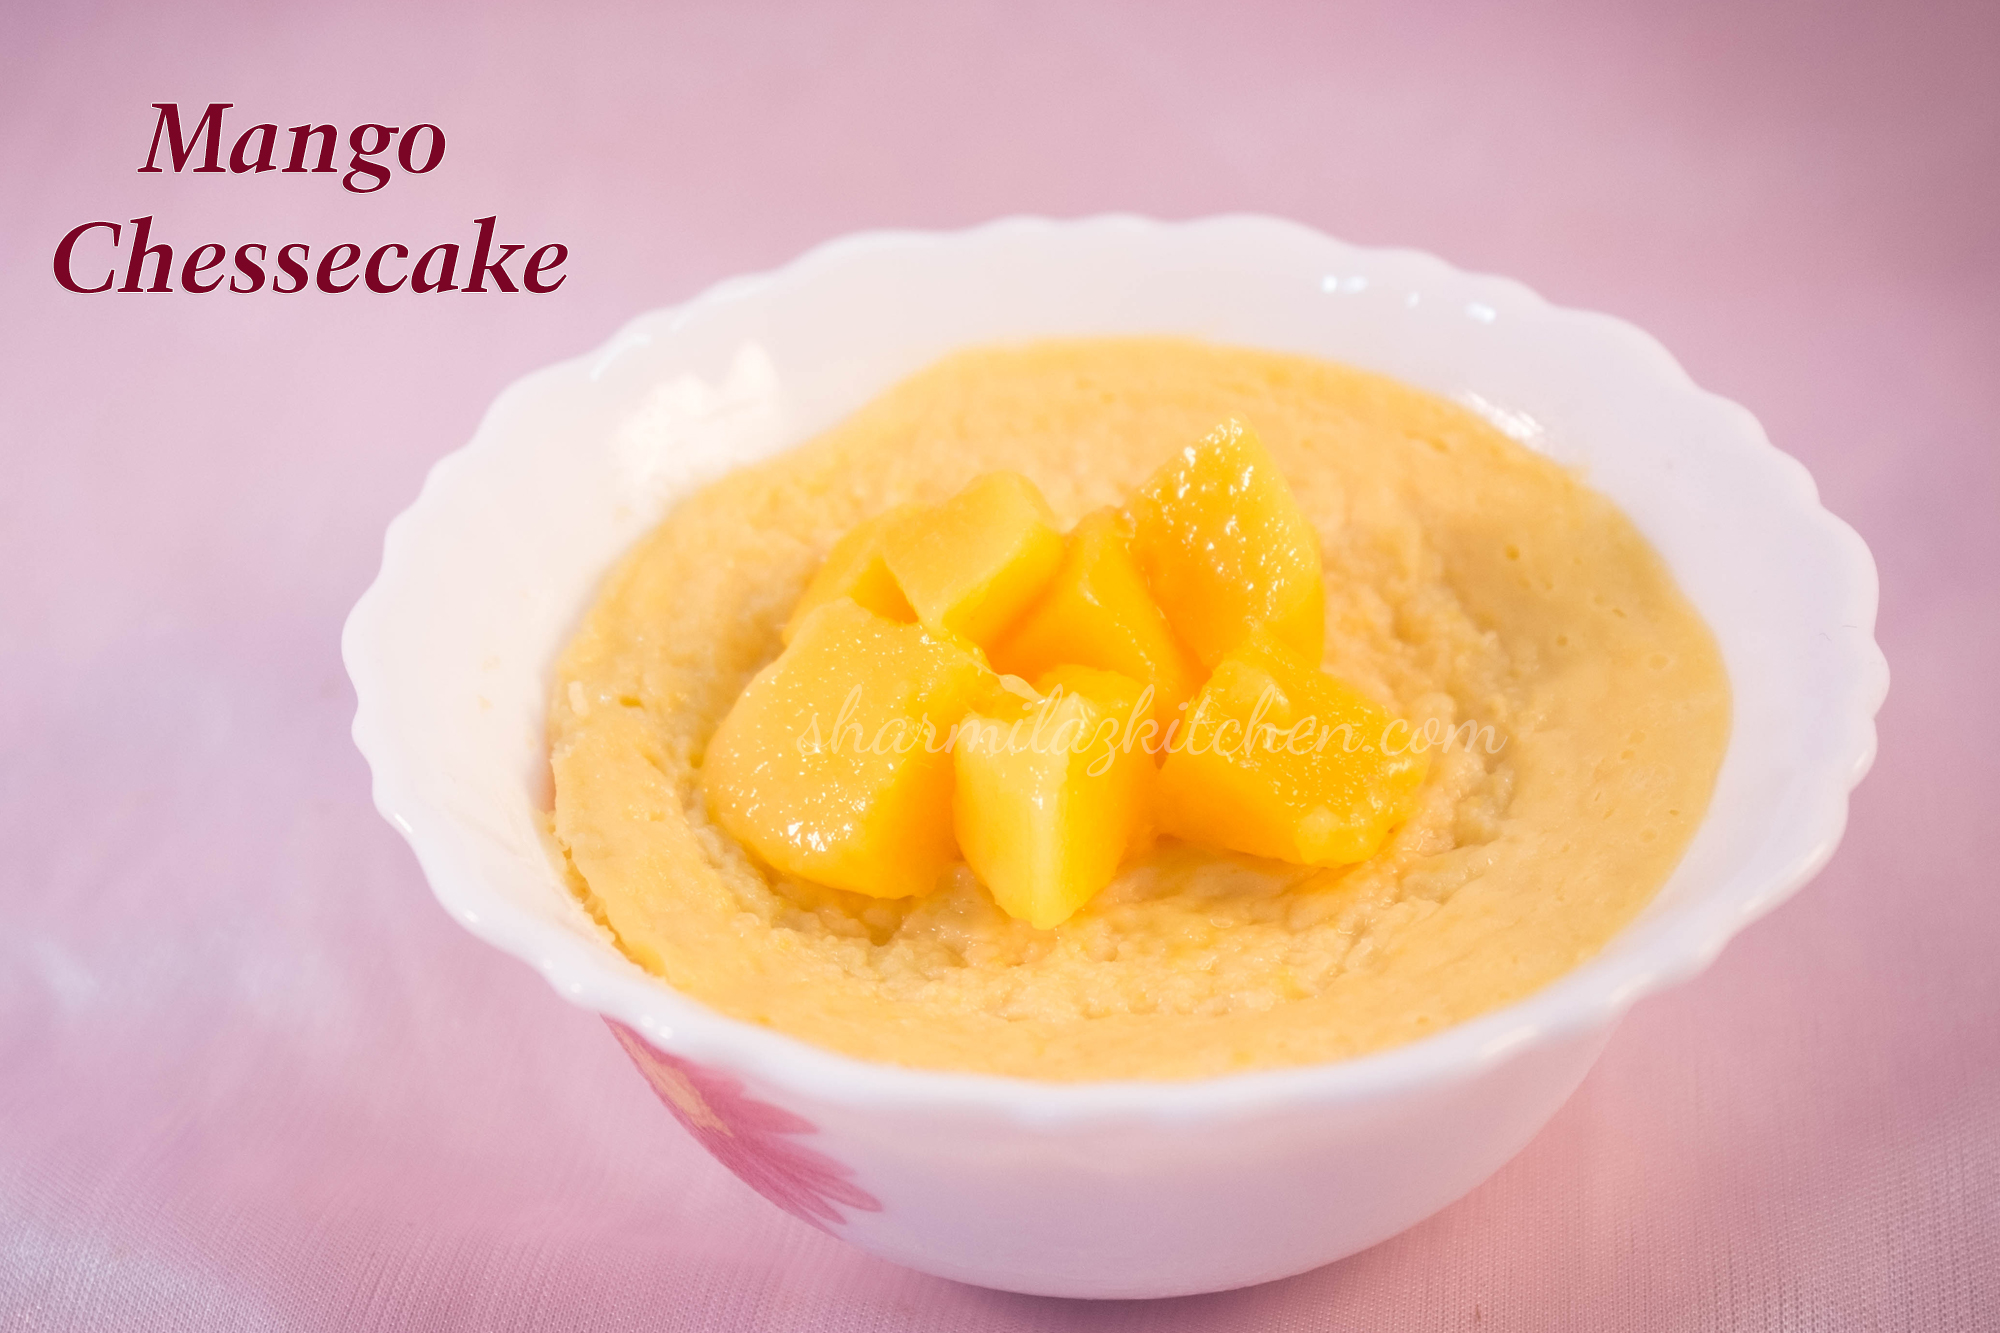 Microwave Cake Recipes In Bangla: Mango Cheesecake In Microwave In 2 Minutes